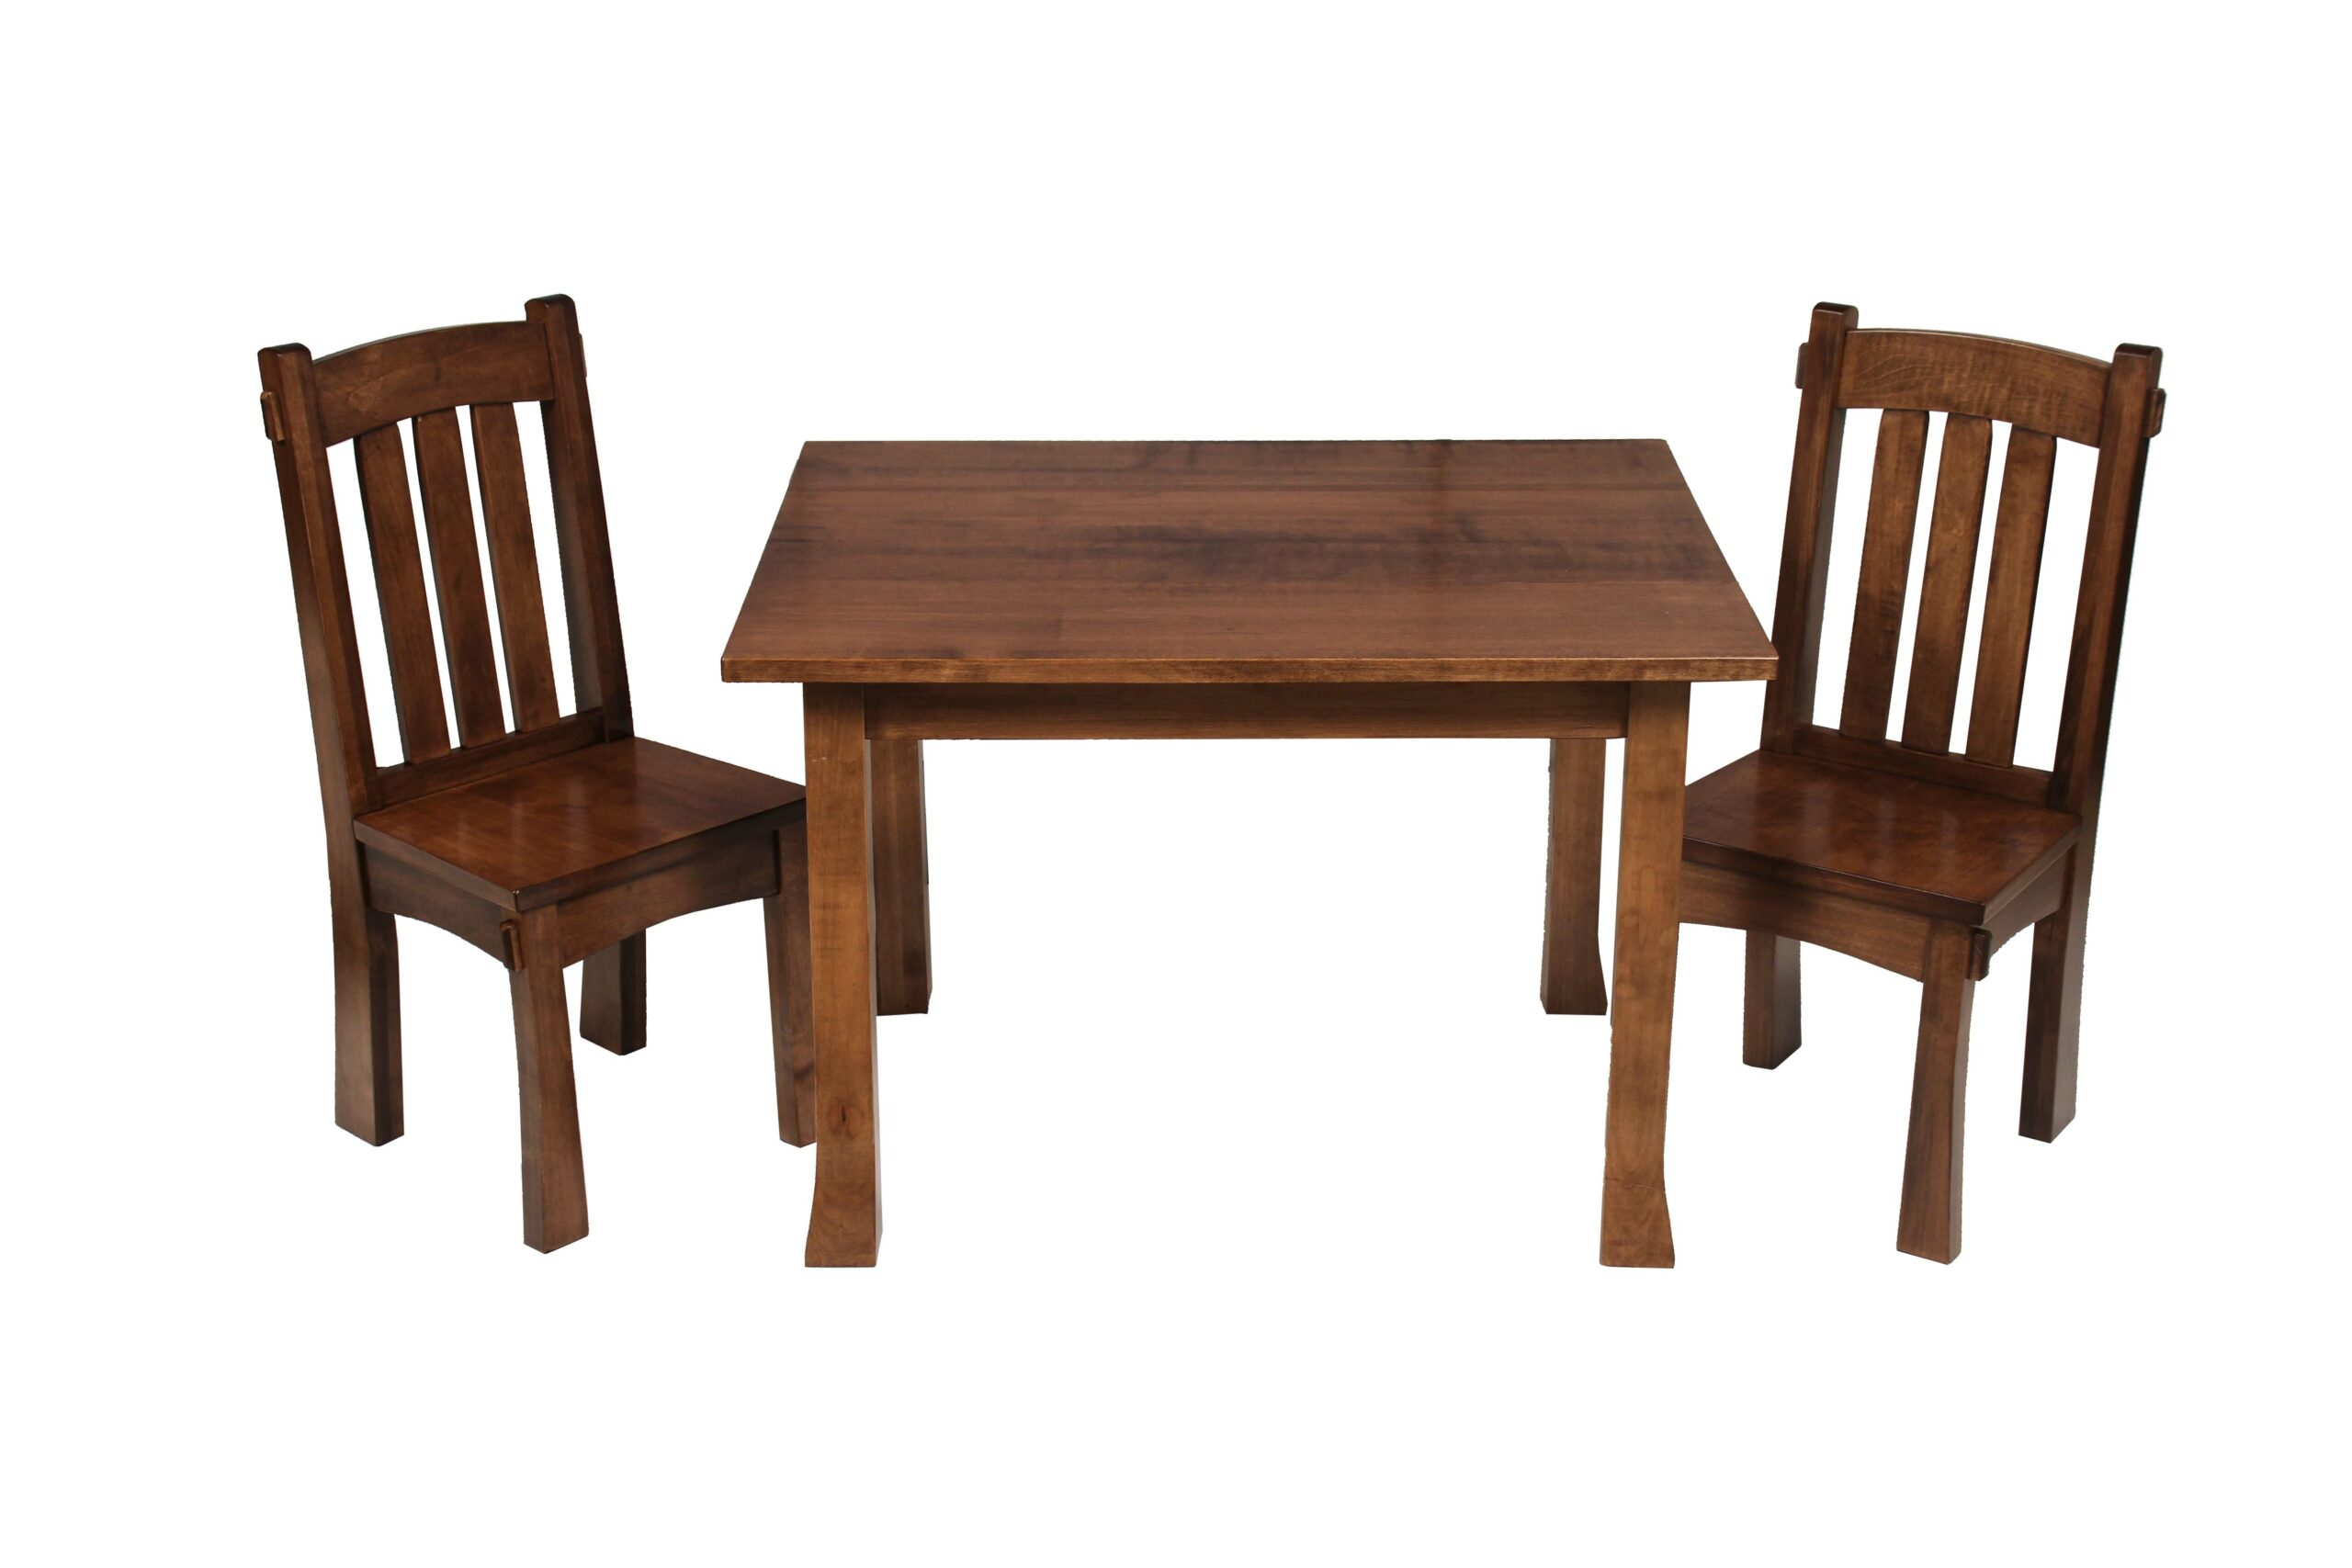 Child Modesto Table, Chairs Sold Separately